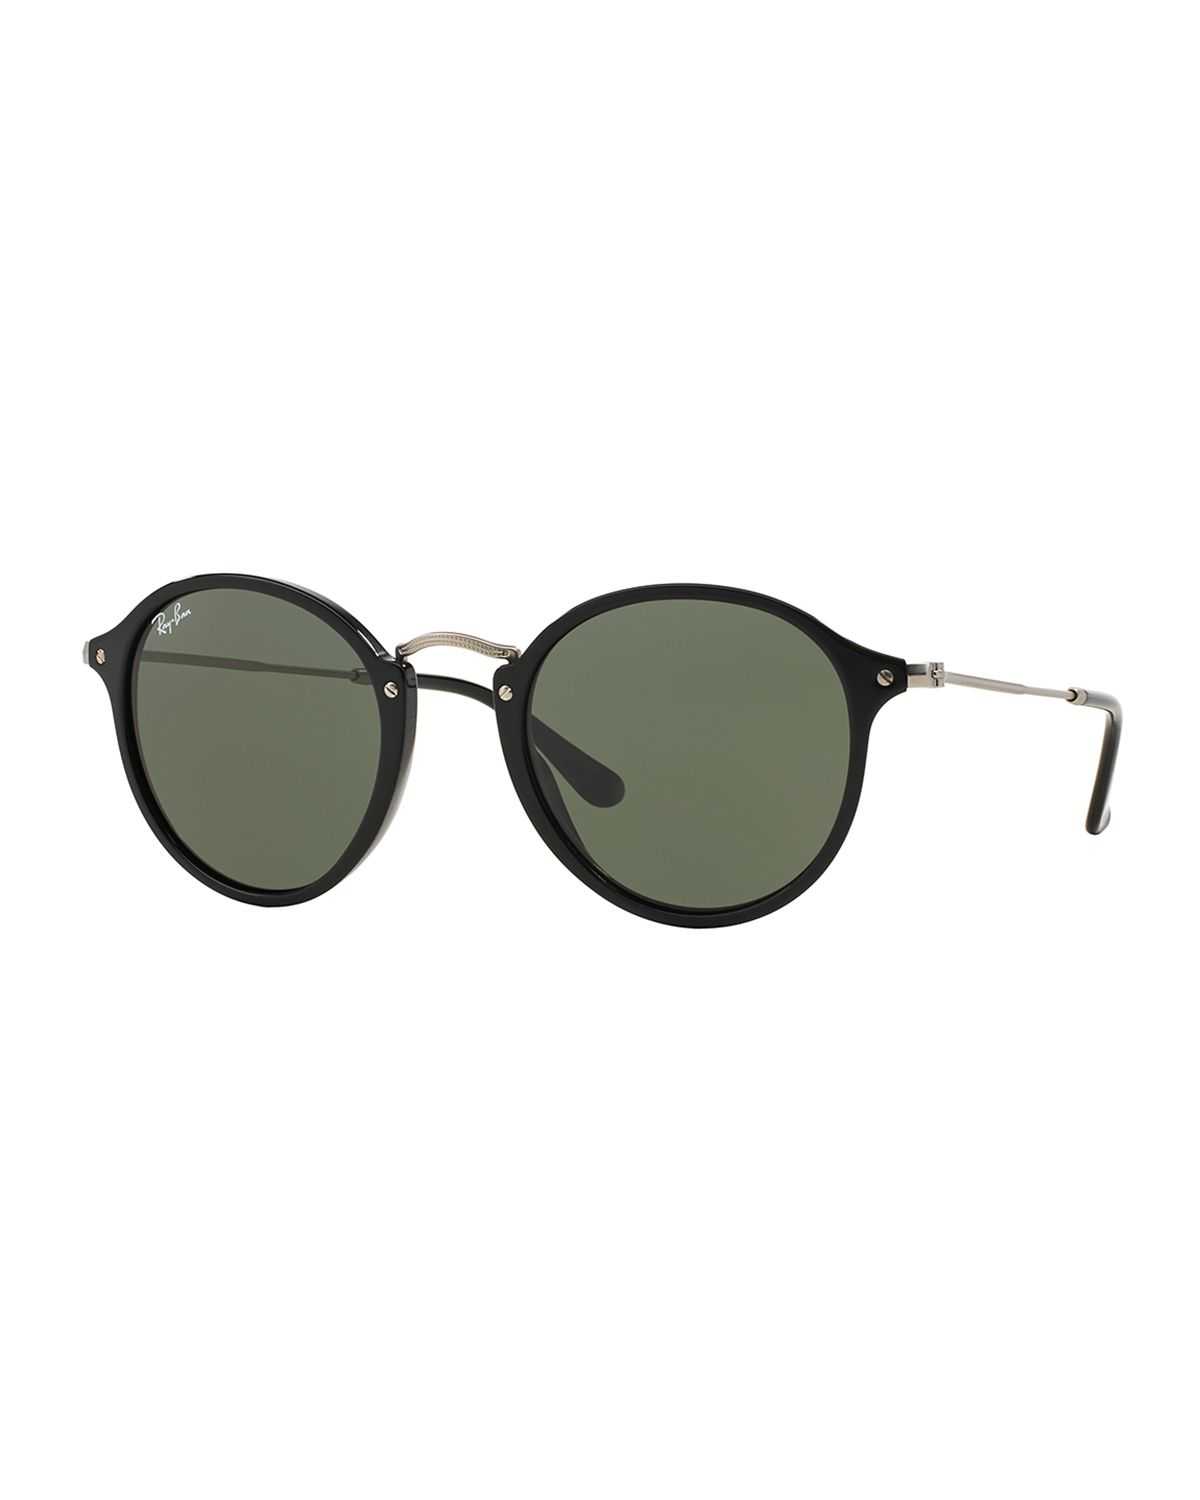 Ray-ban Round Plastic/metal Sunglasses in Black | Lyst